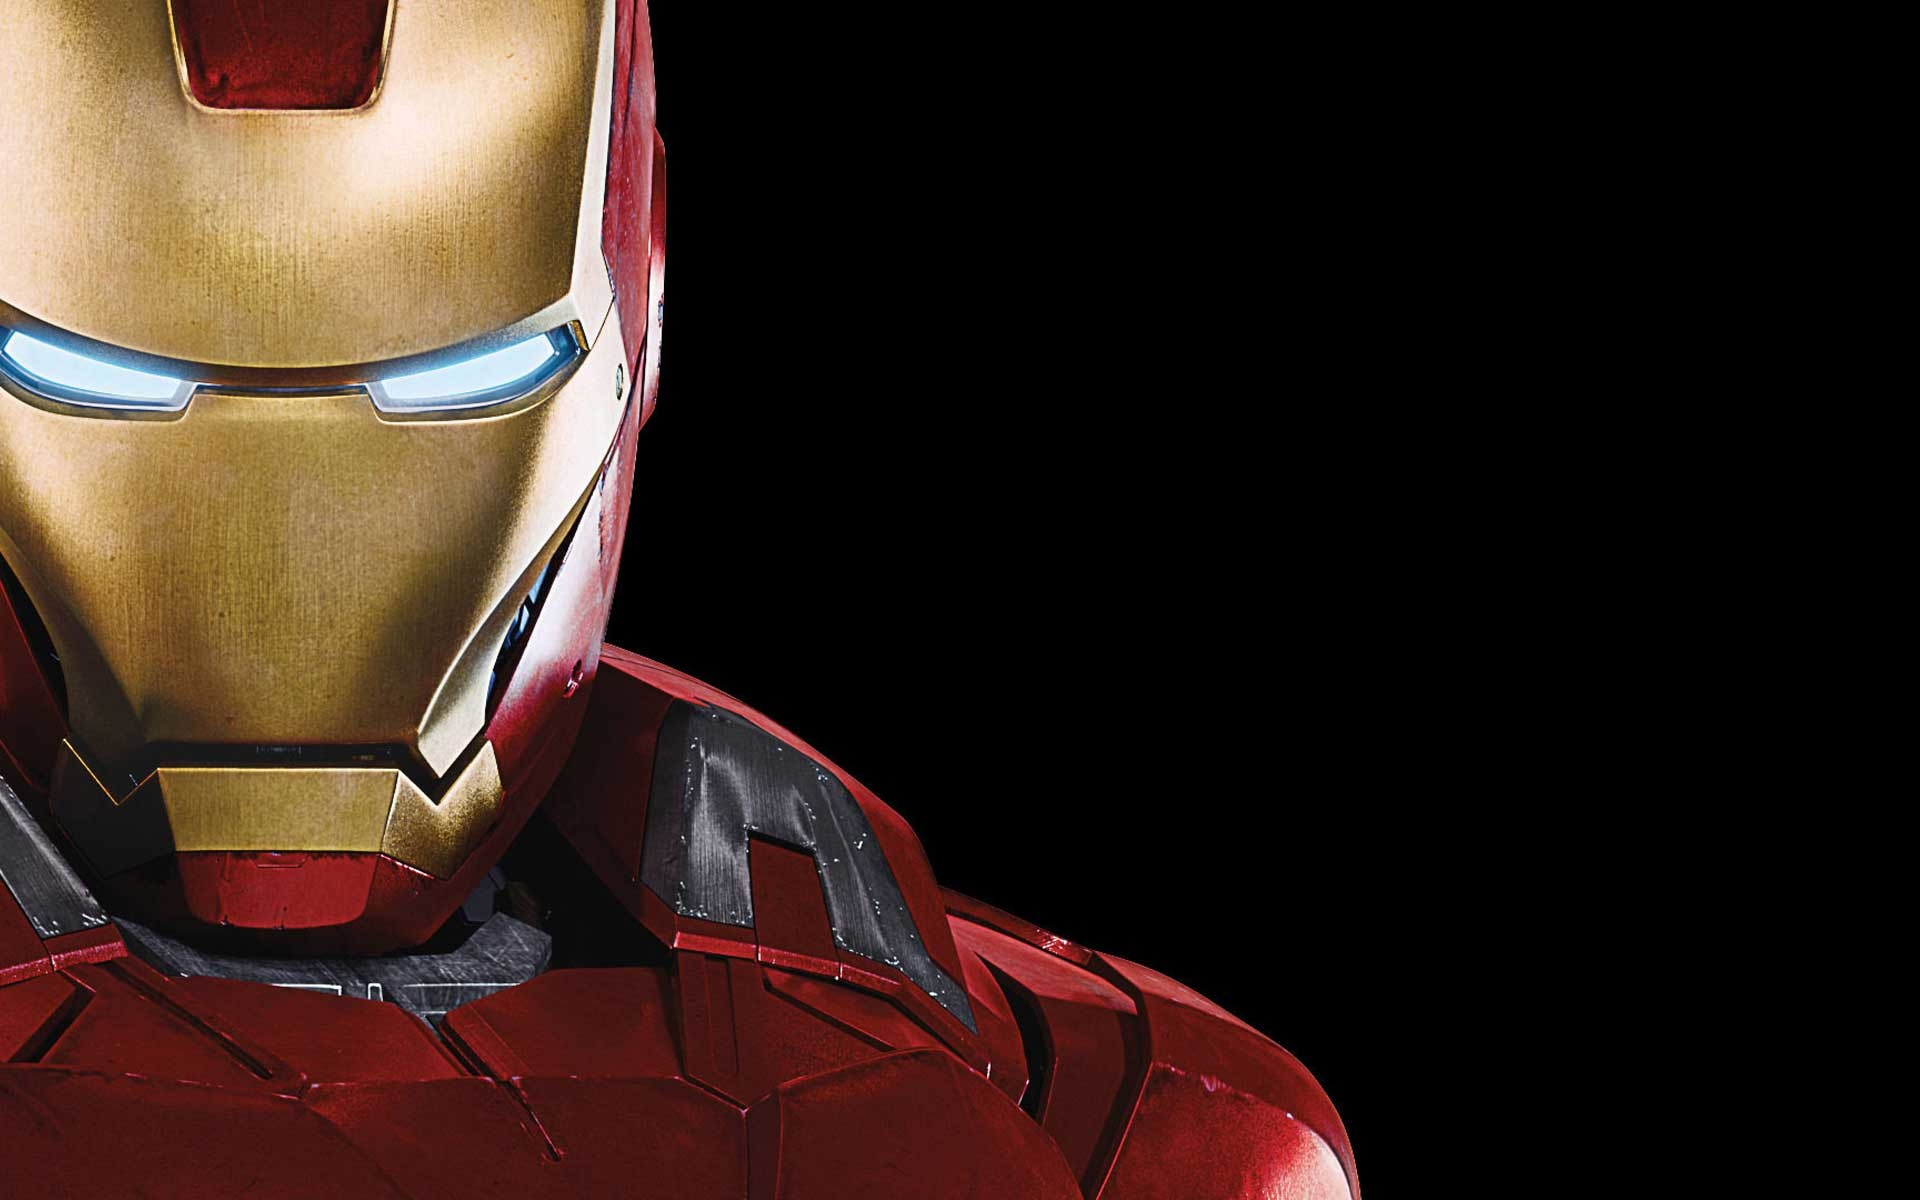 1920x1200 Ironman Desktop Wallpaper Hd wallpaper - 866186